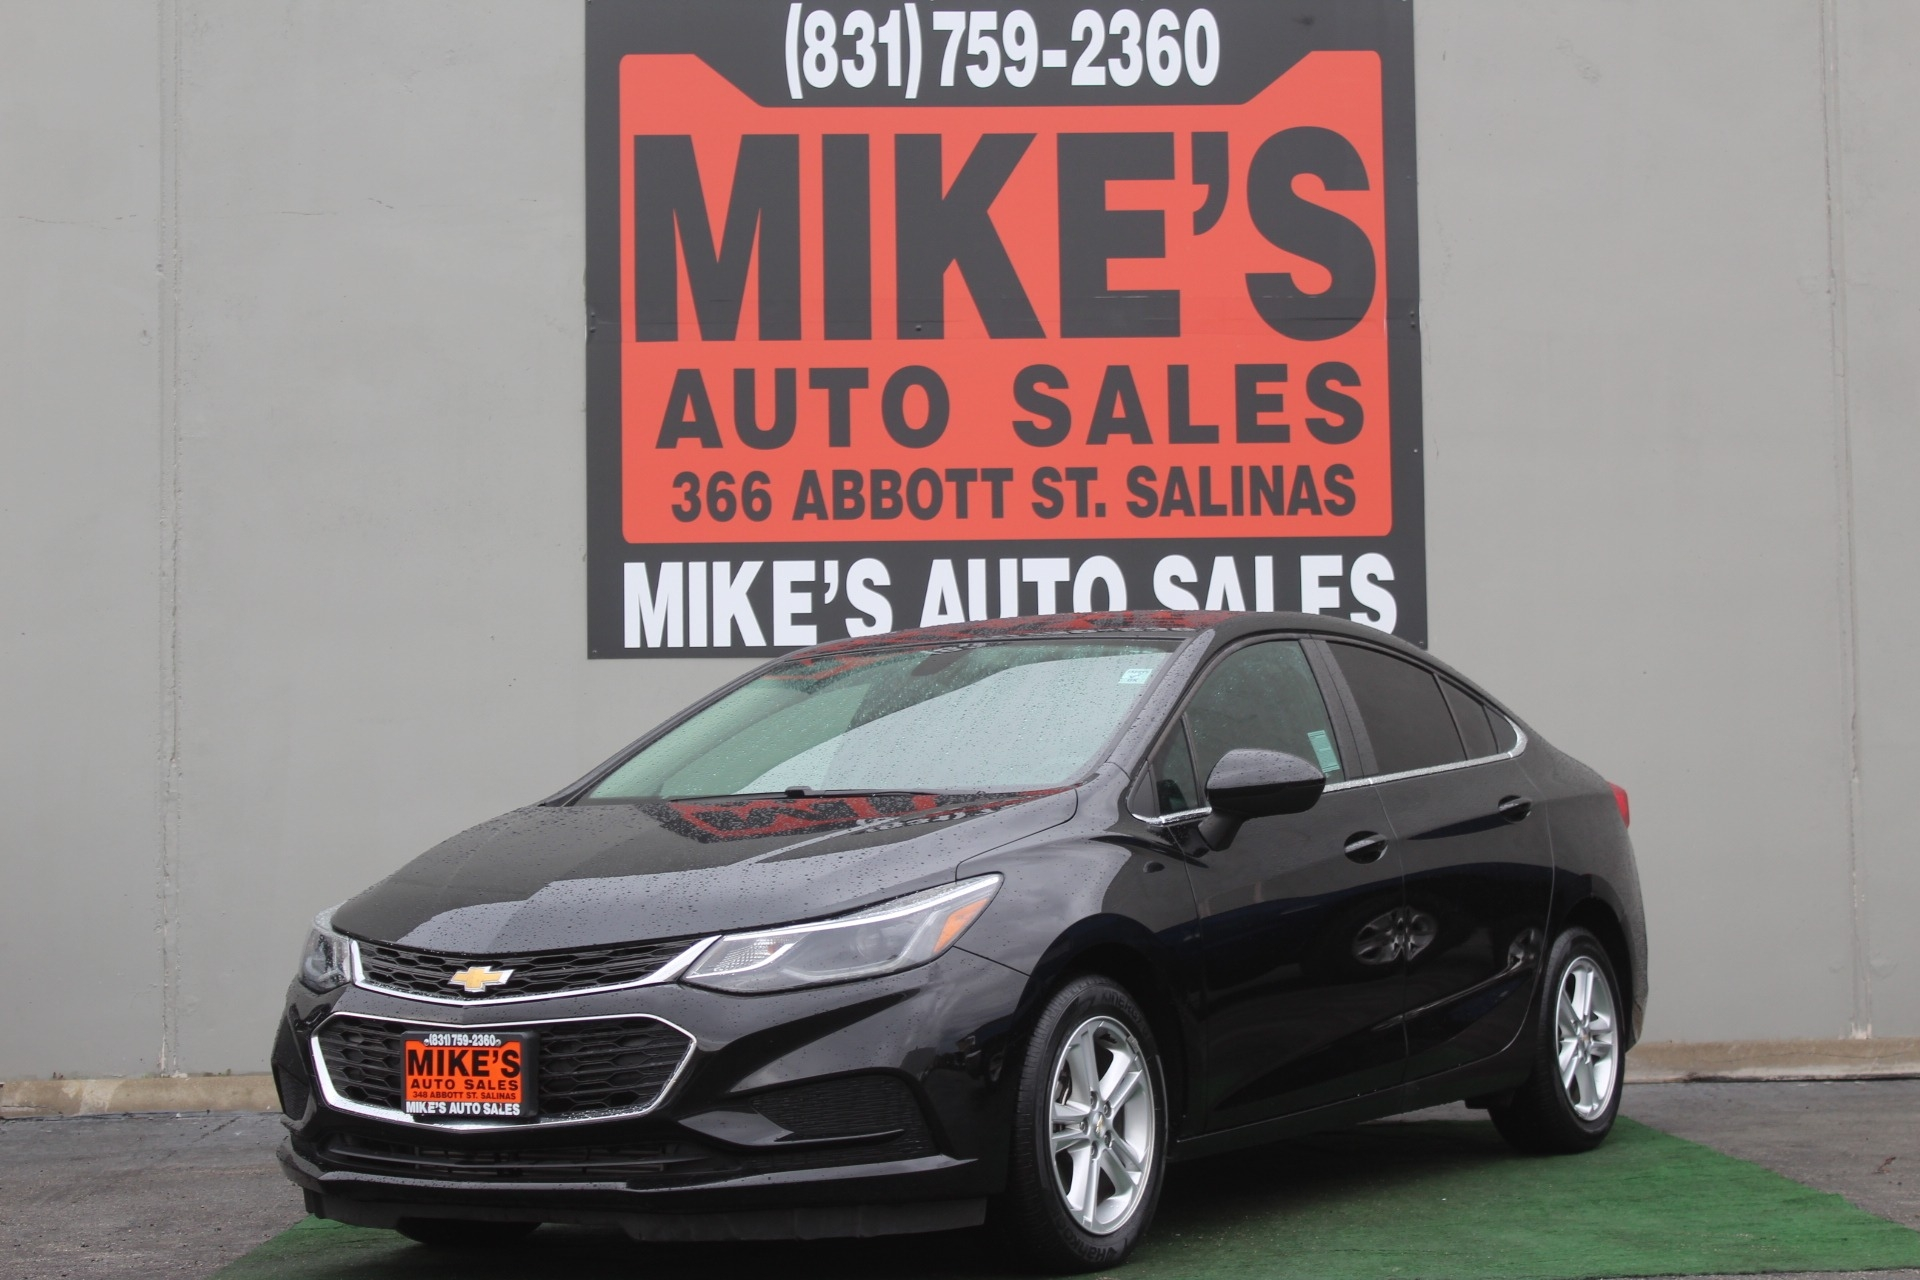 Used 2017 Chevrolet Cruze 4dr Sdn 1.4L LT w/1SD in Salinas, CA